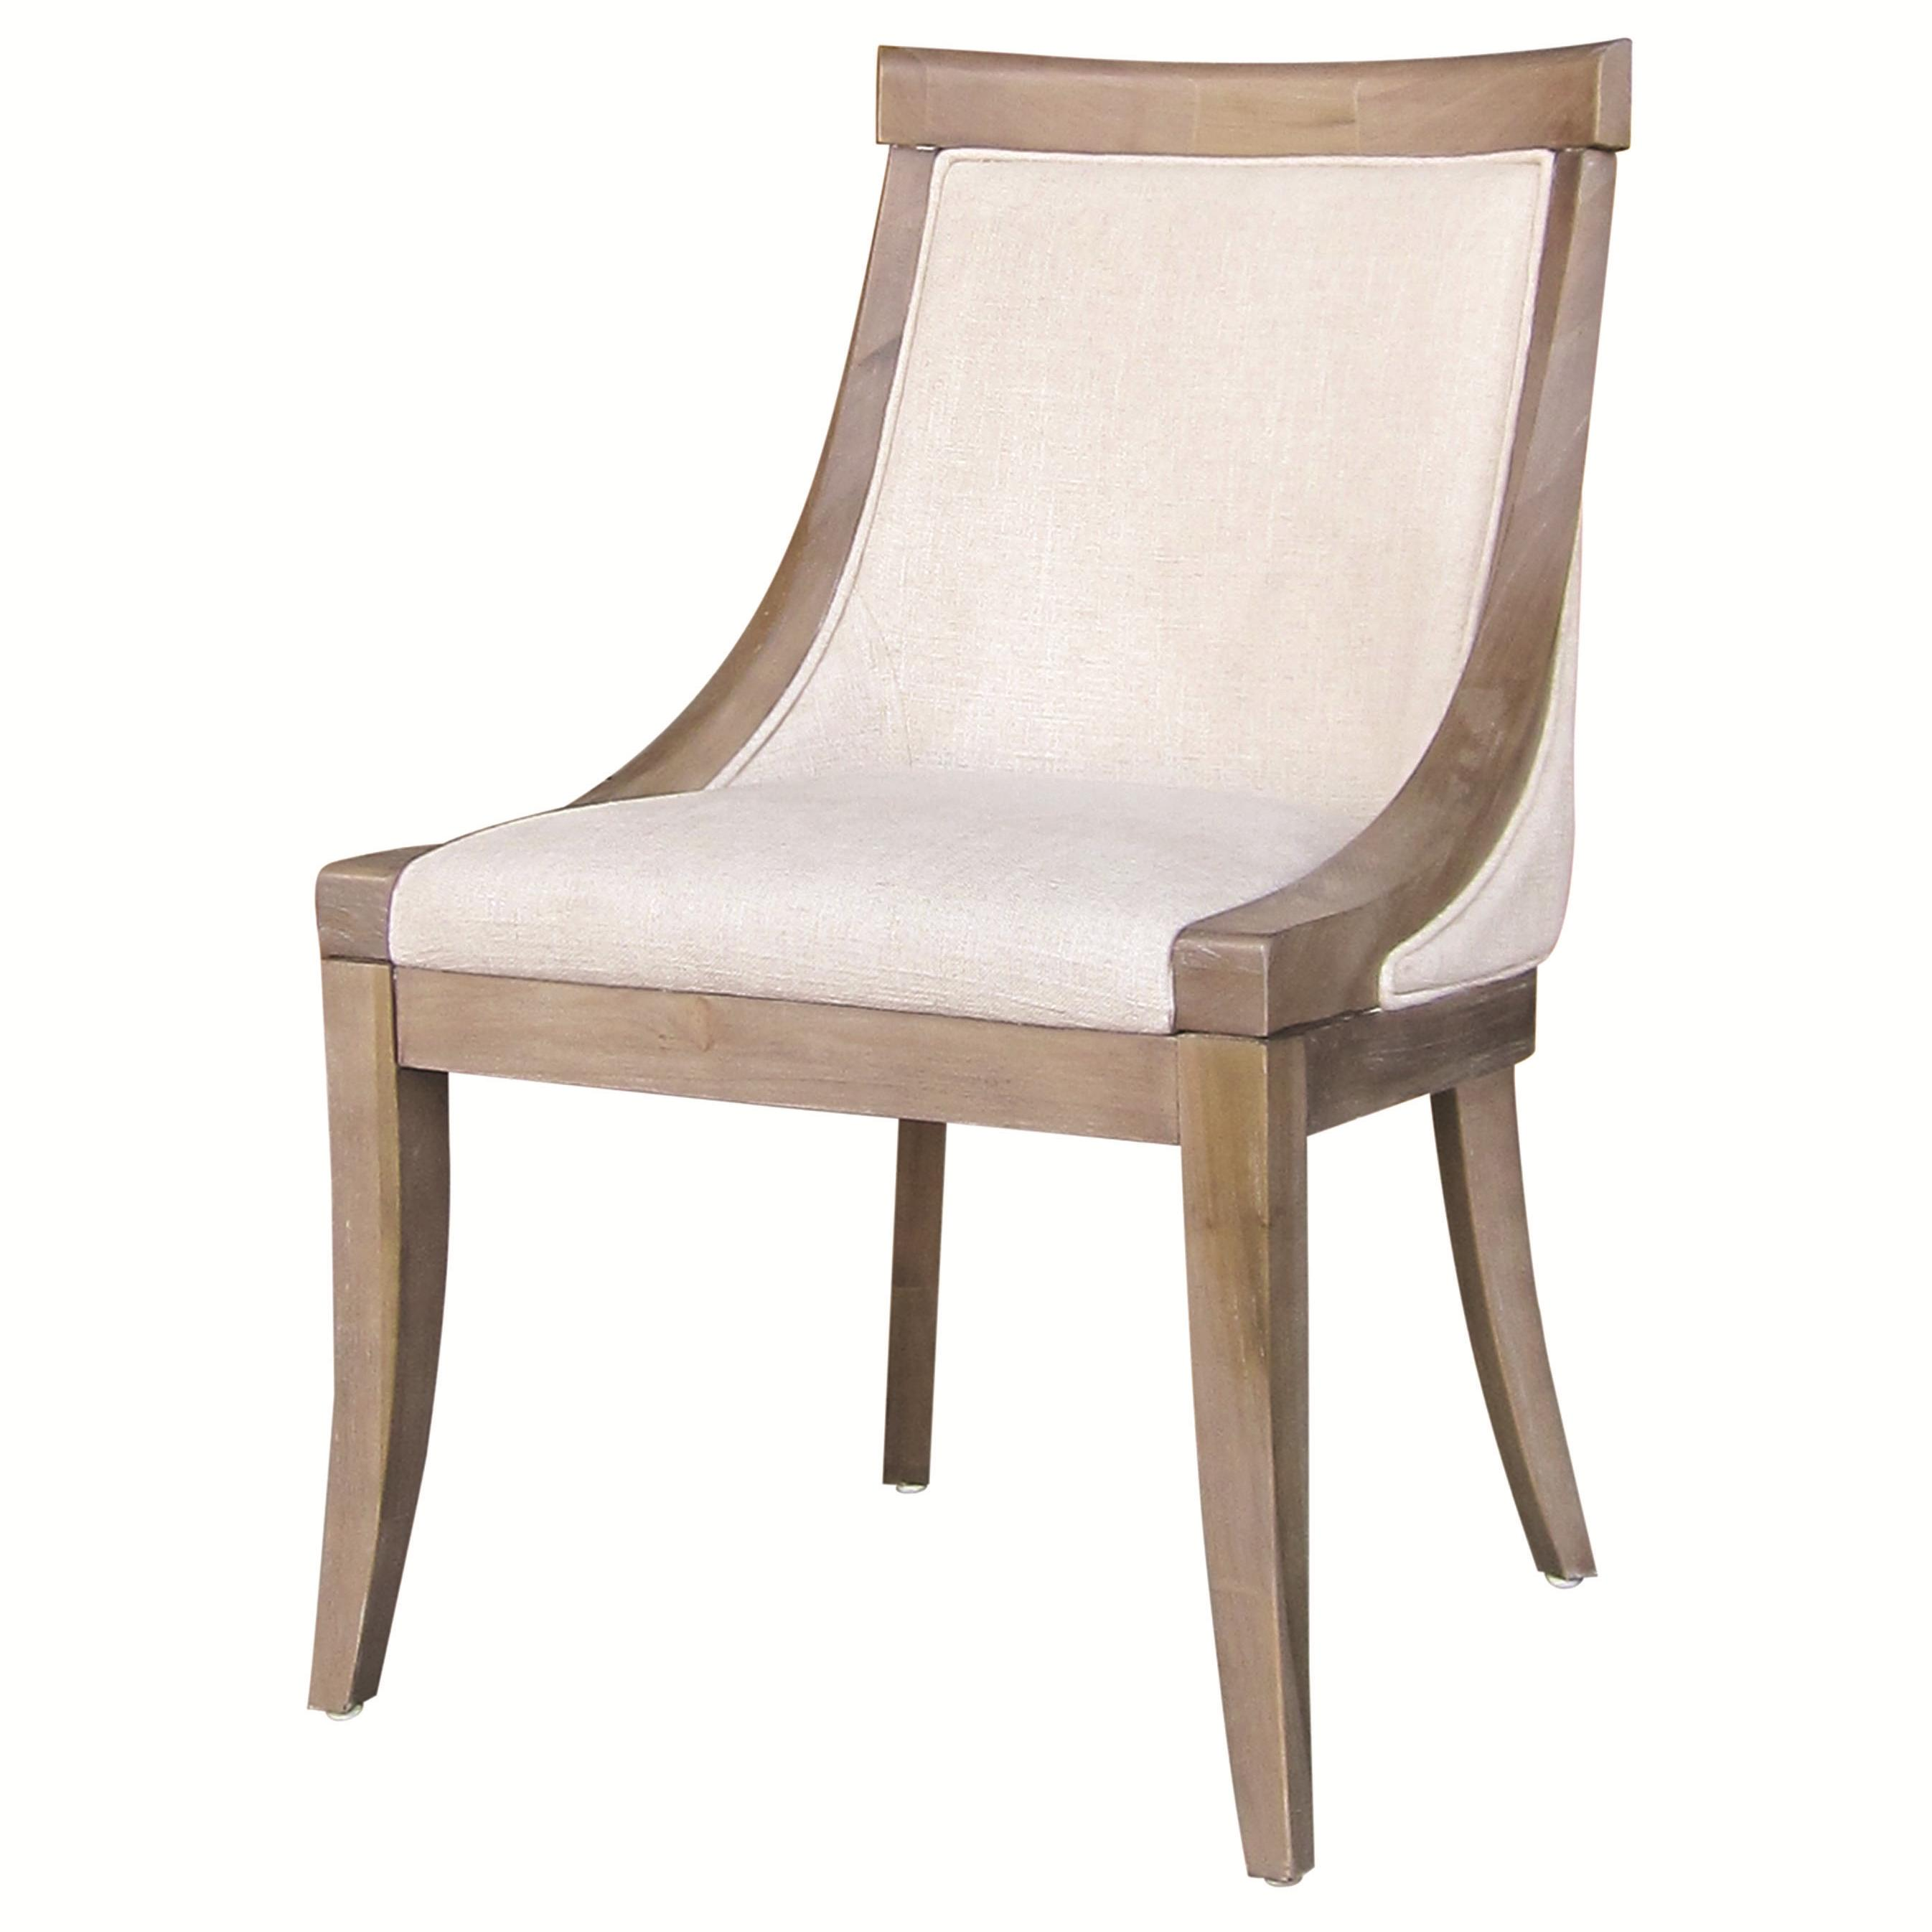 Four Hands Metro Florence Dining Chair - Item Number: CLIN-G2F-017